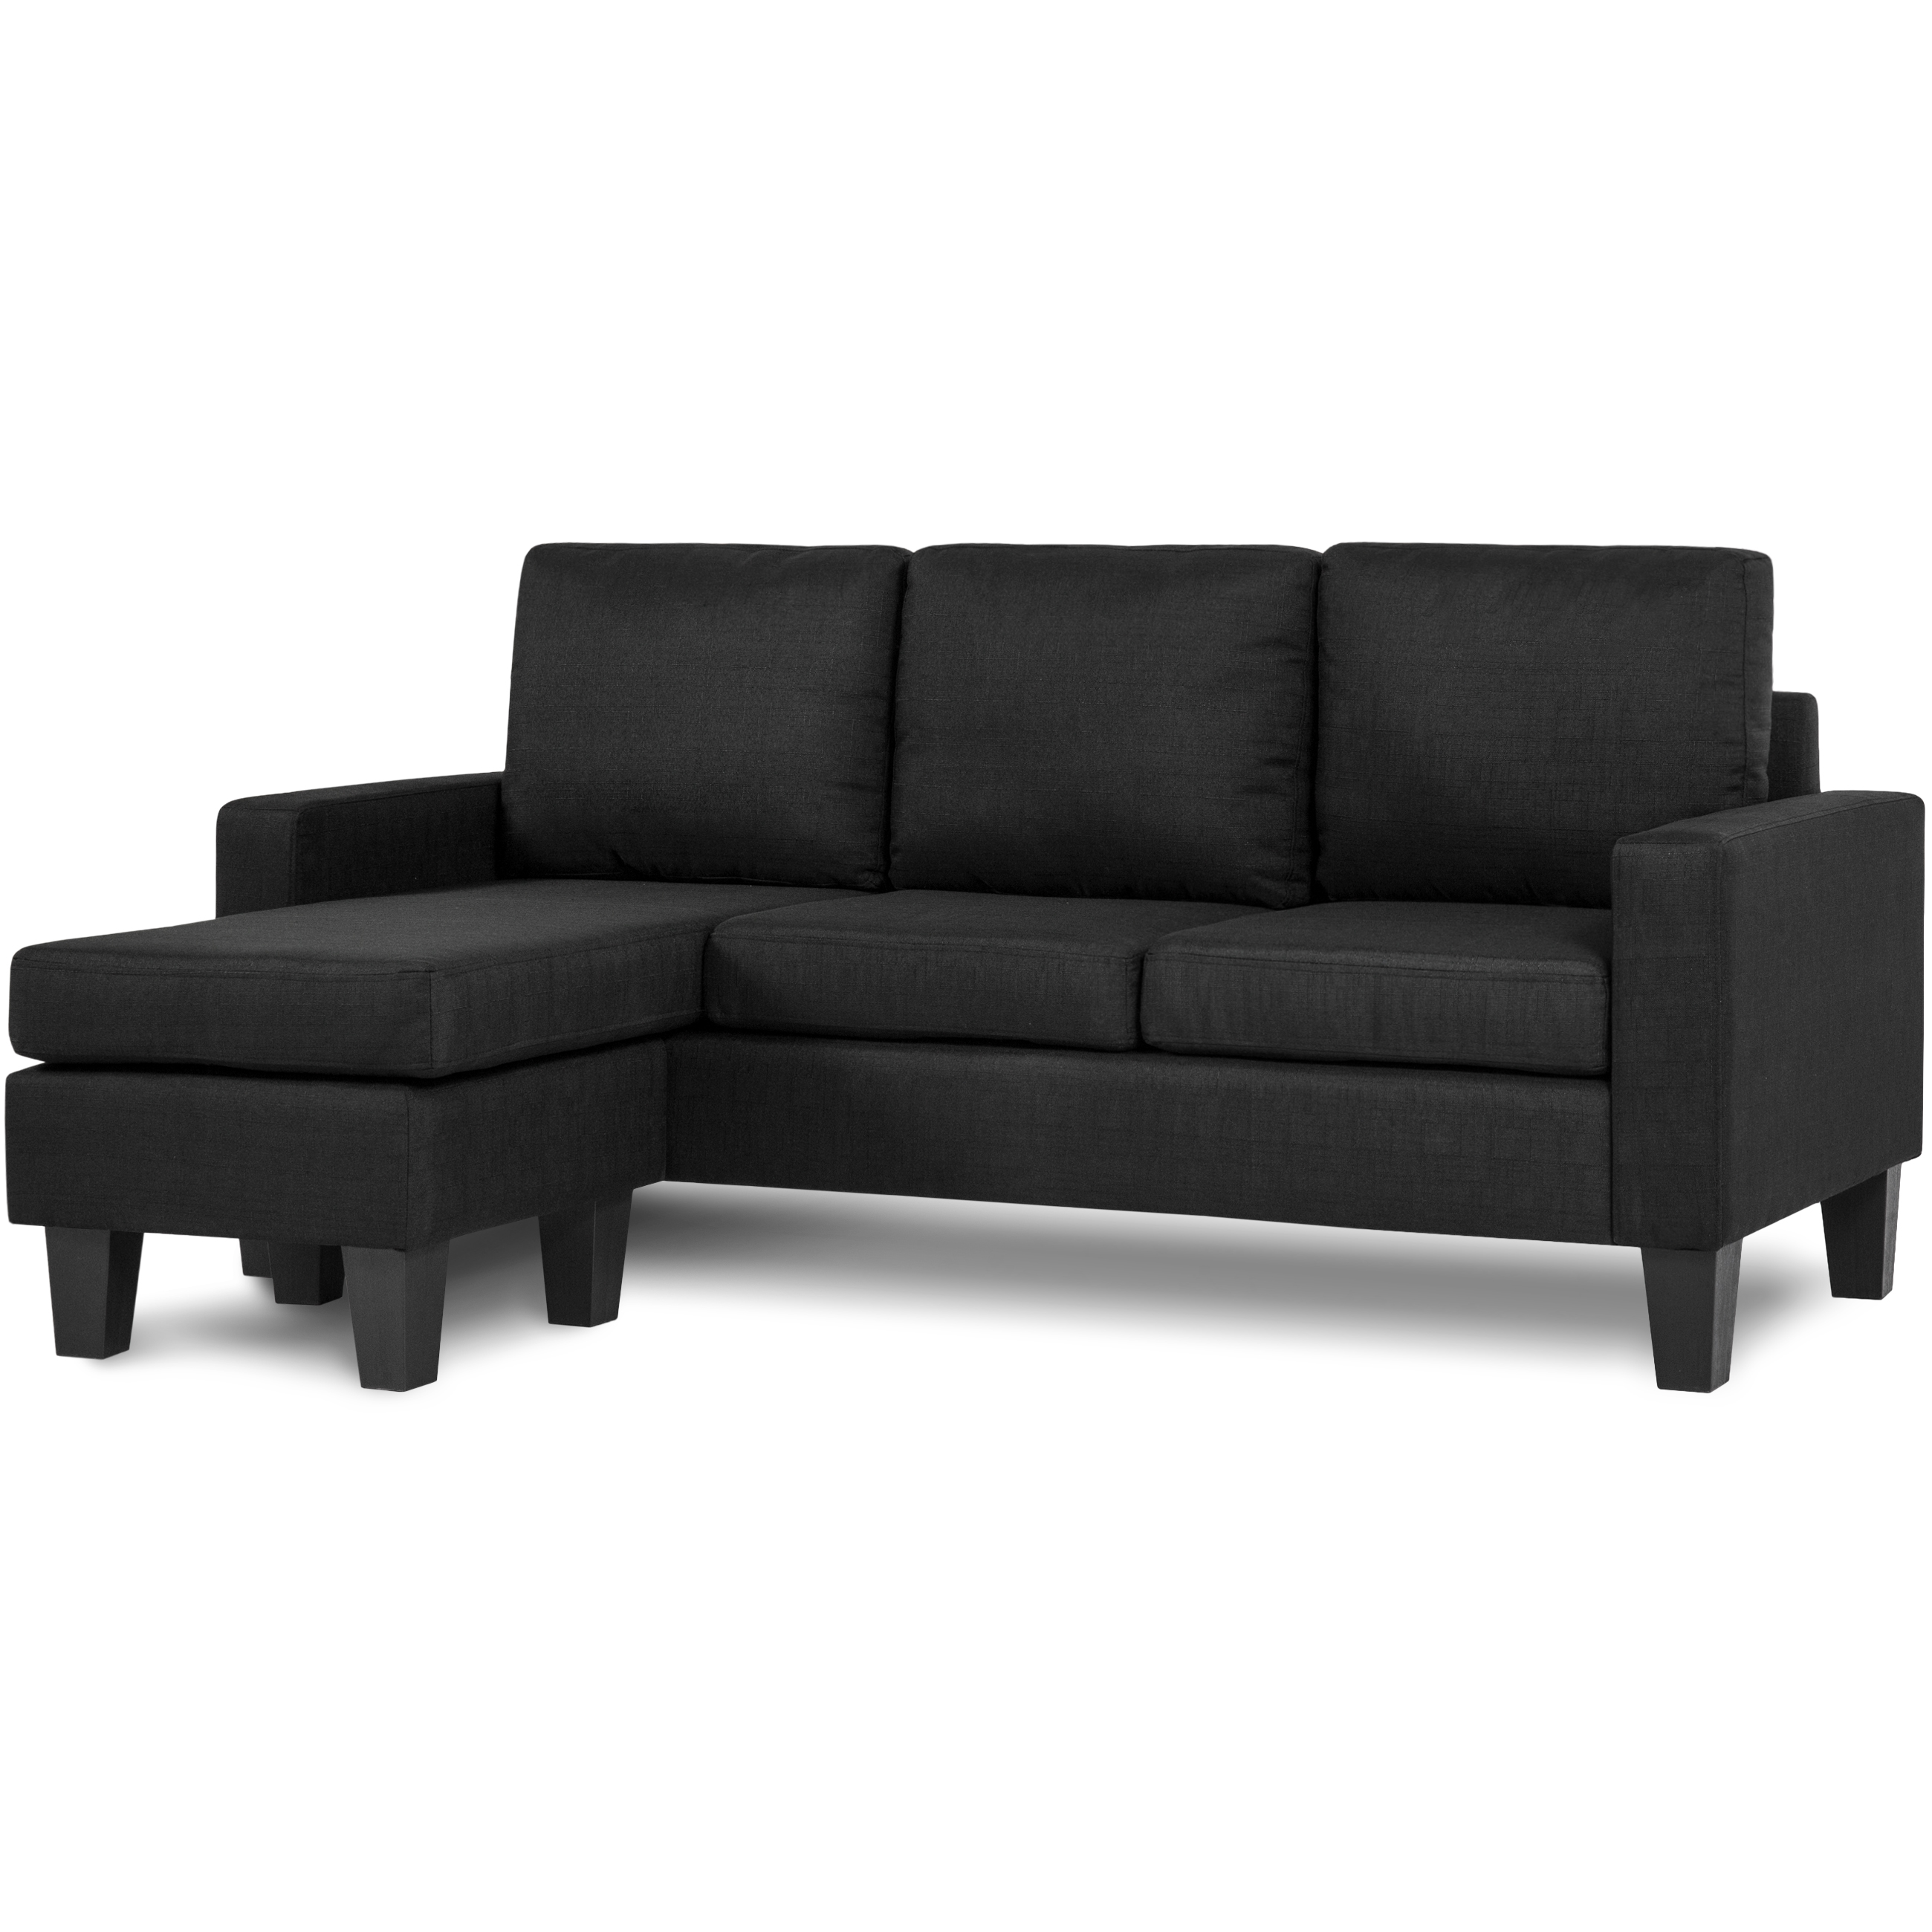 best choice products home linen lshape sectional sofa couch w reversible chaise ottoman